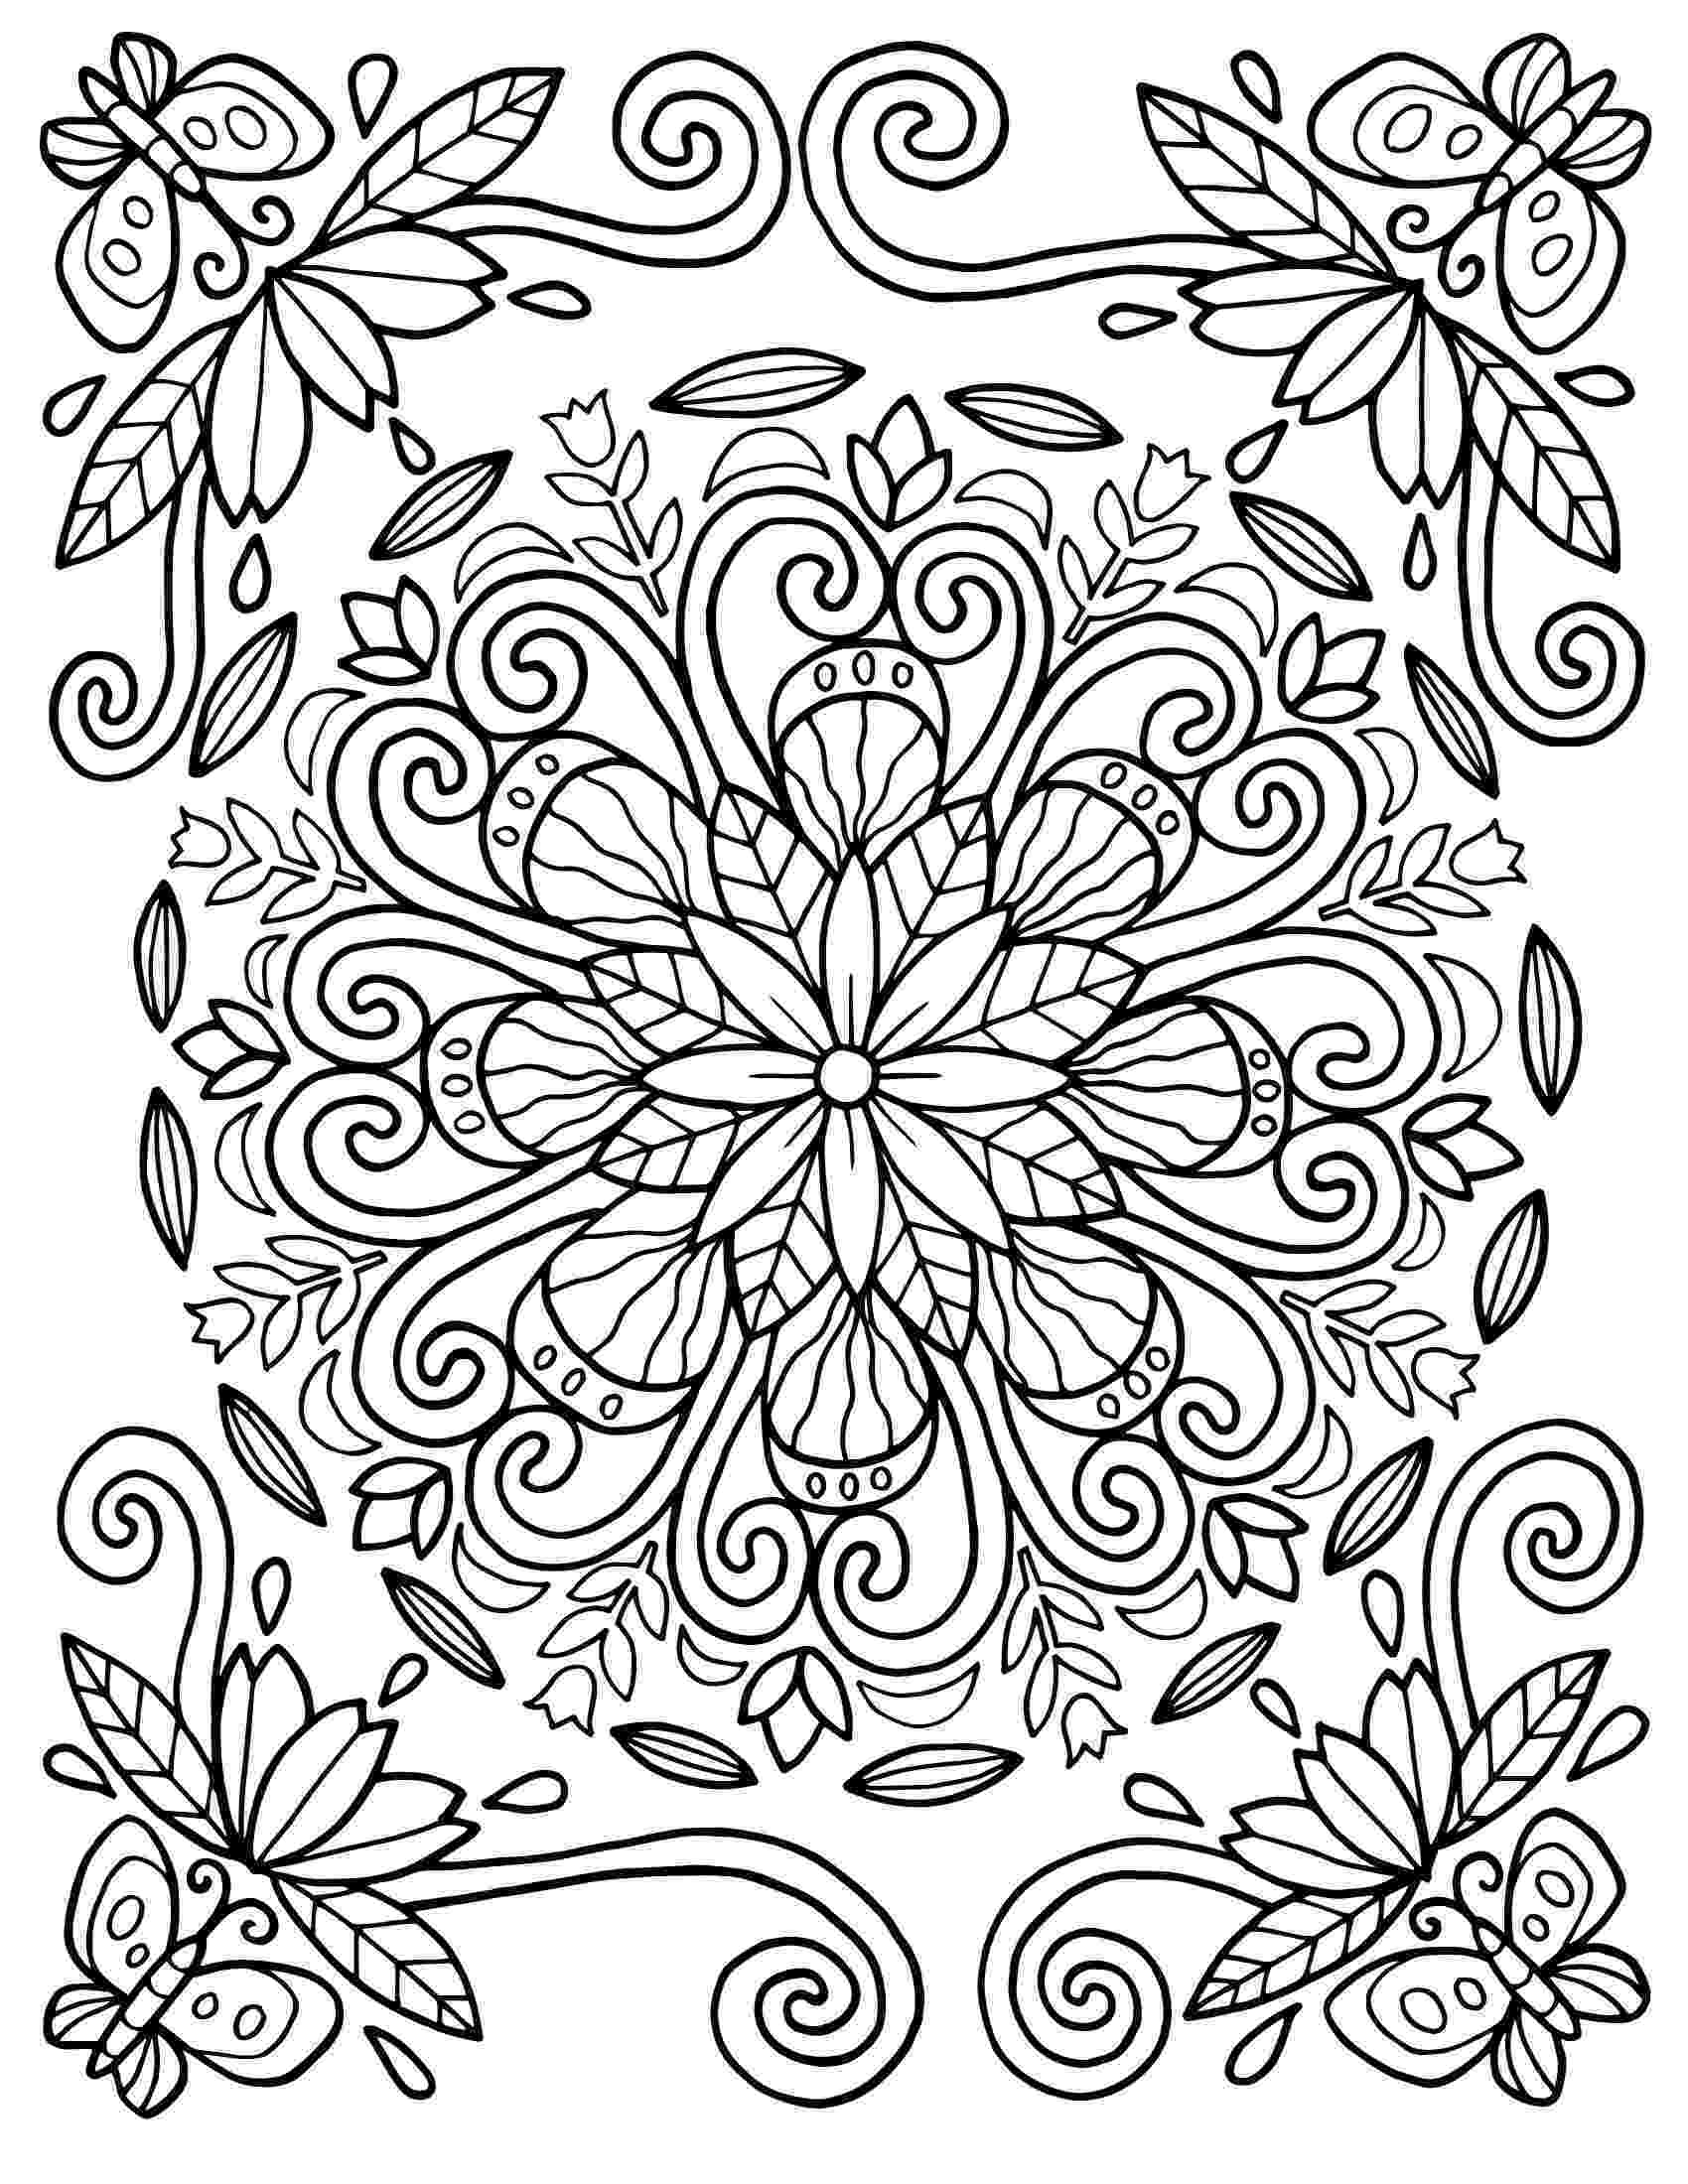 patterns to colour for adults 25 coloring pages including mandalas geometric designs rug to for adults colour patterns